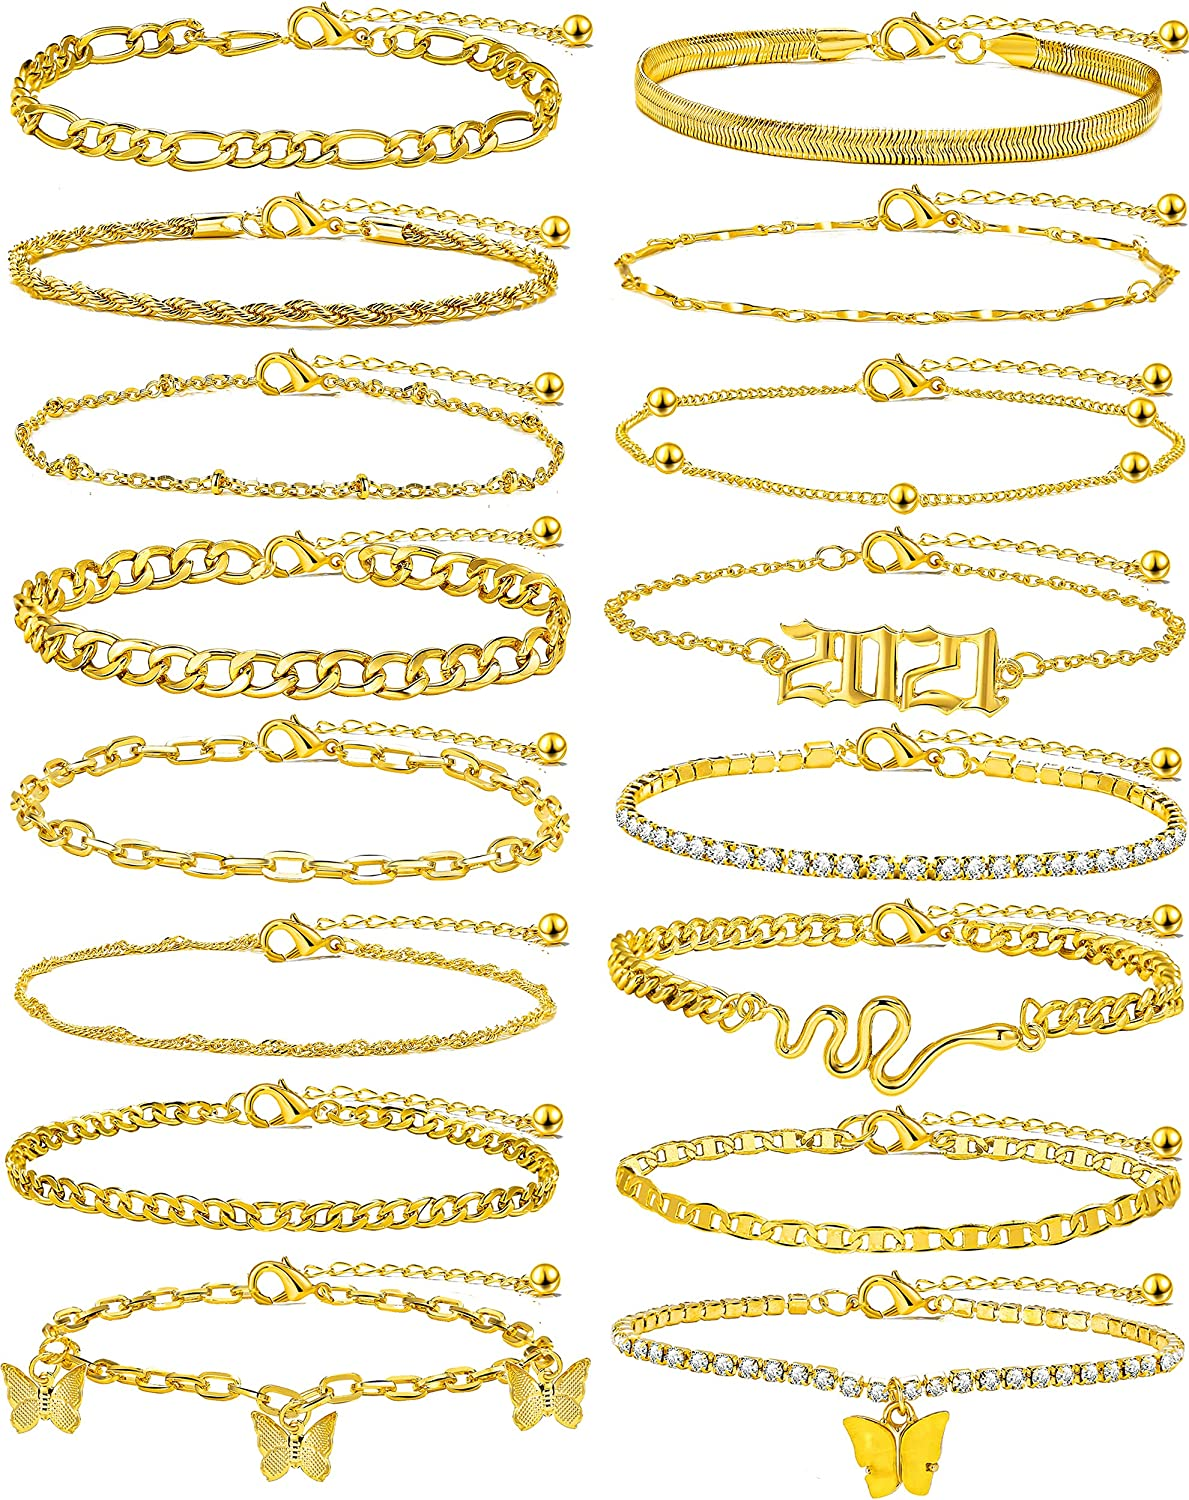 Gold Ankle Bracelets Set for Women, 7/9/16PCS Girls Flat Mariner Anklet, Satellite Butterfly Foot Chains, Adjustable Boho Anklets Beach Jewelry Summer Gifts